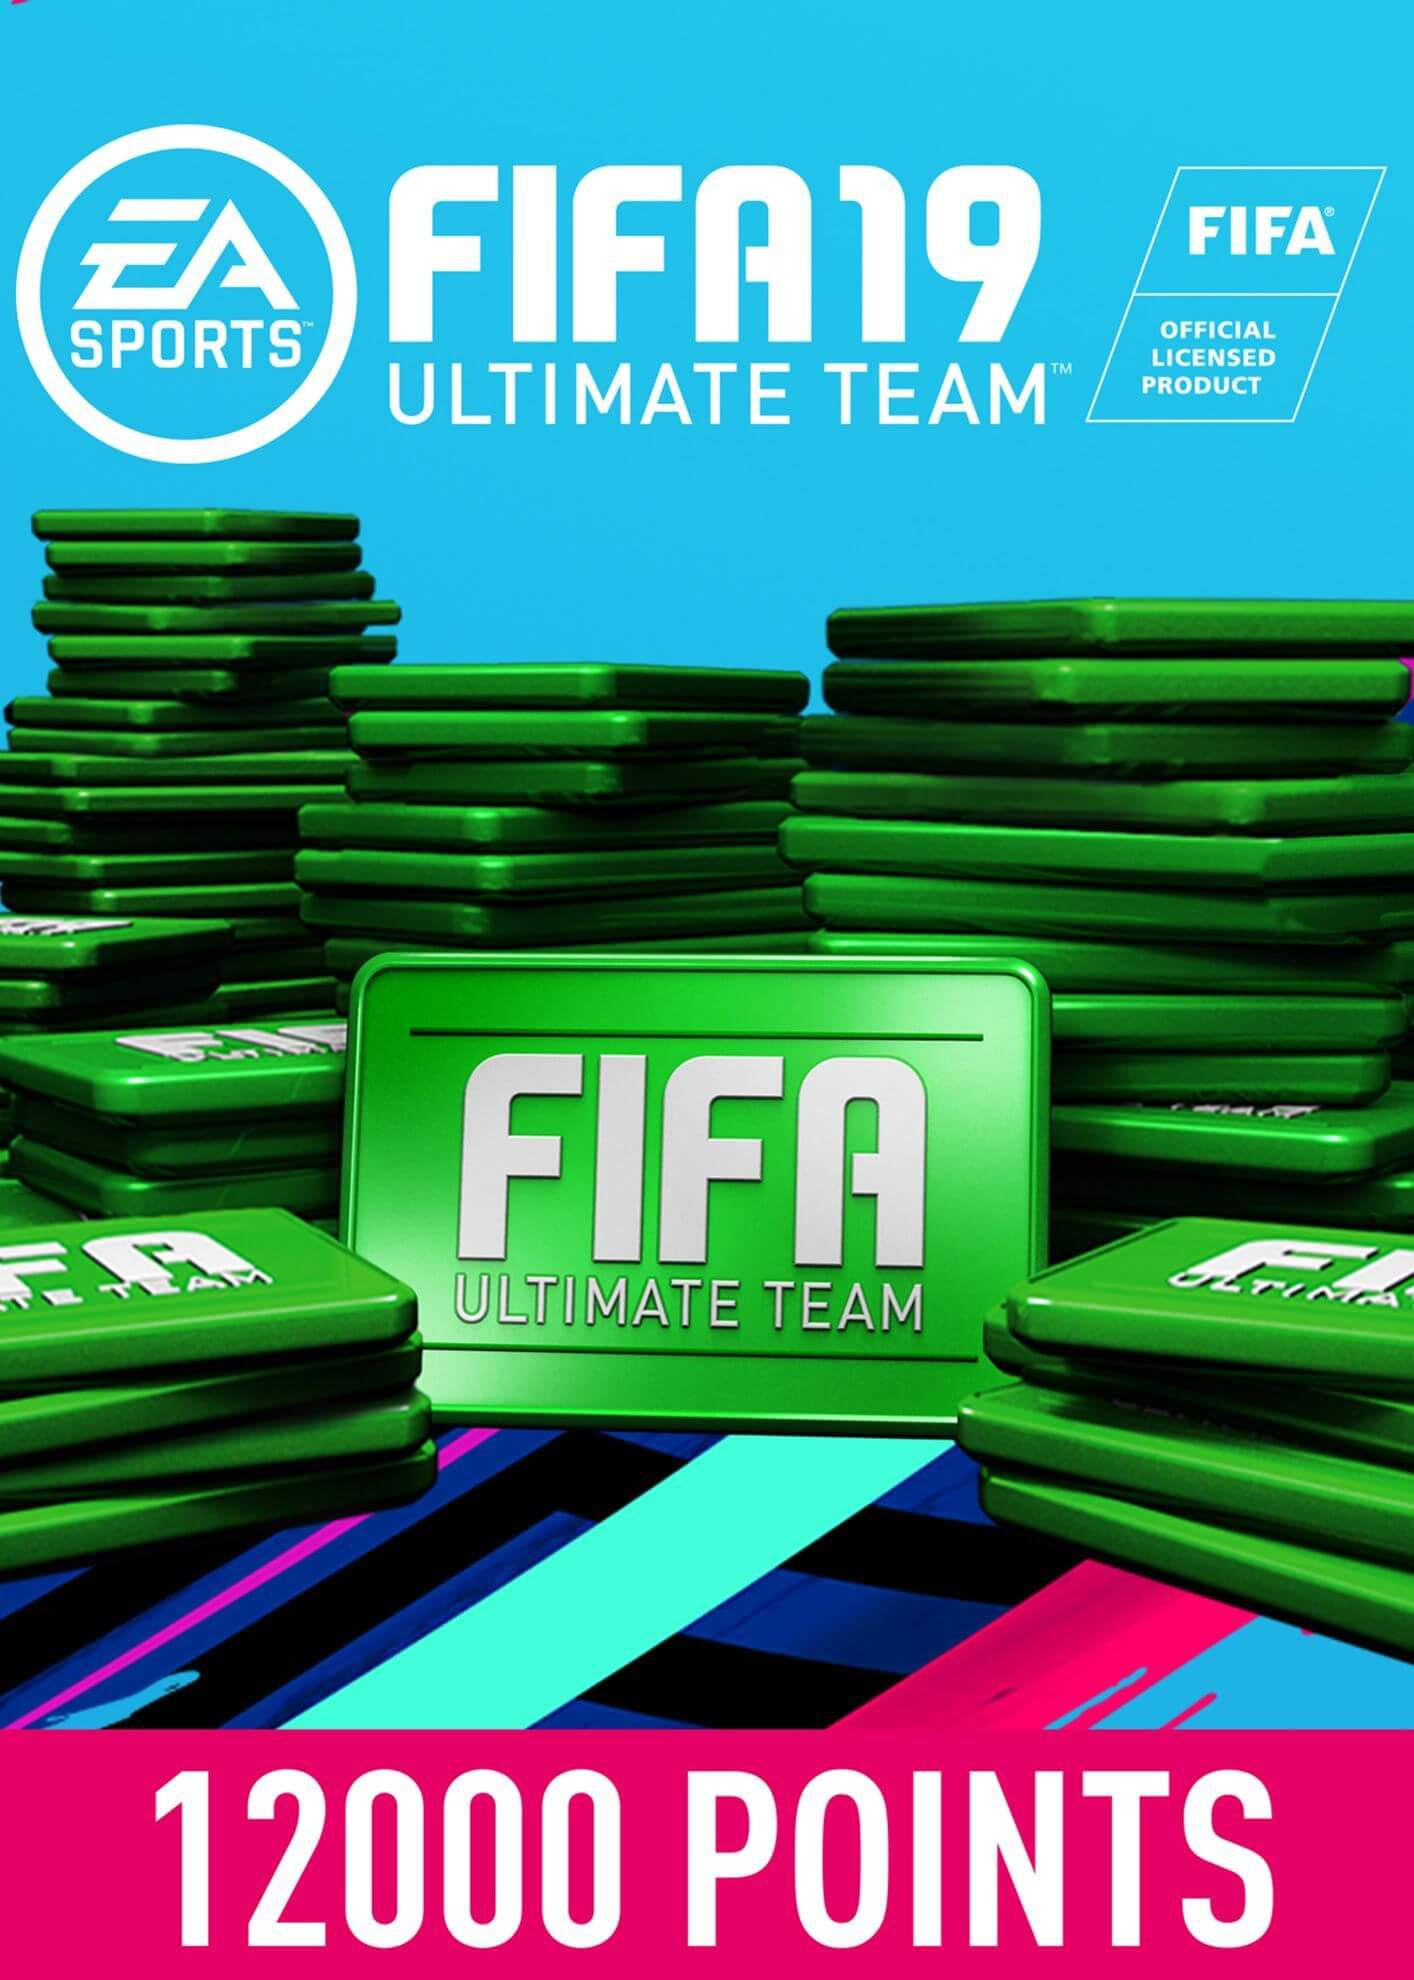 FIFA 19 ULTIMATE TEAM FIFA POINTS 12000